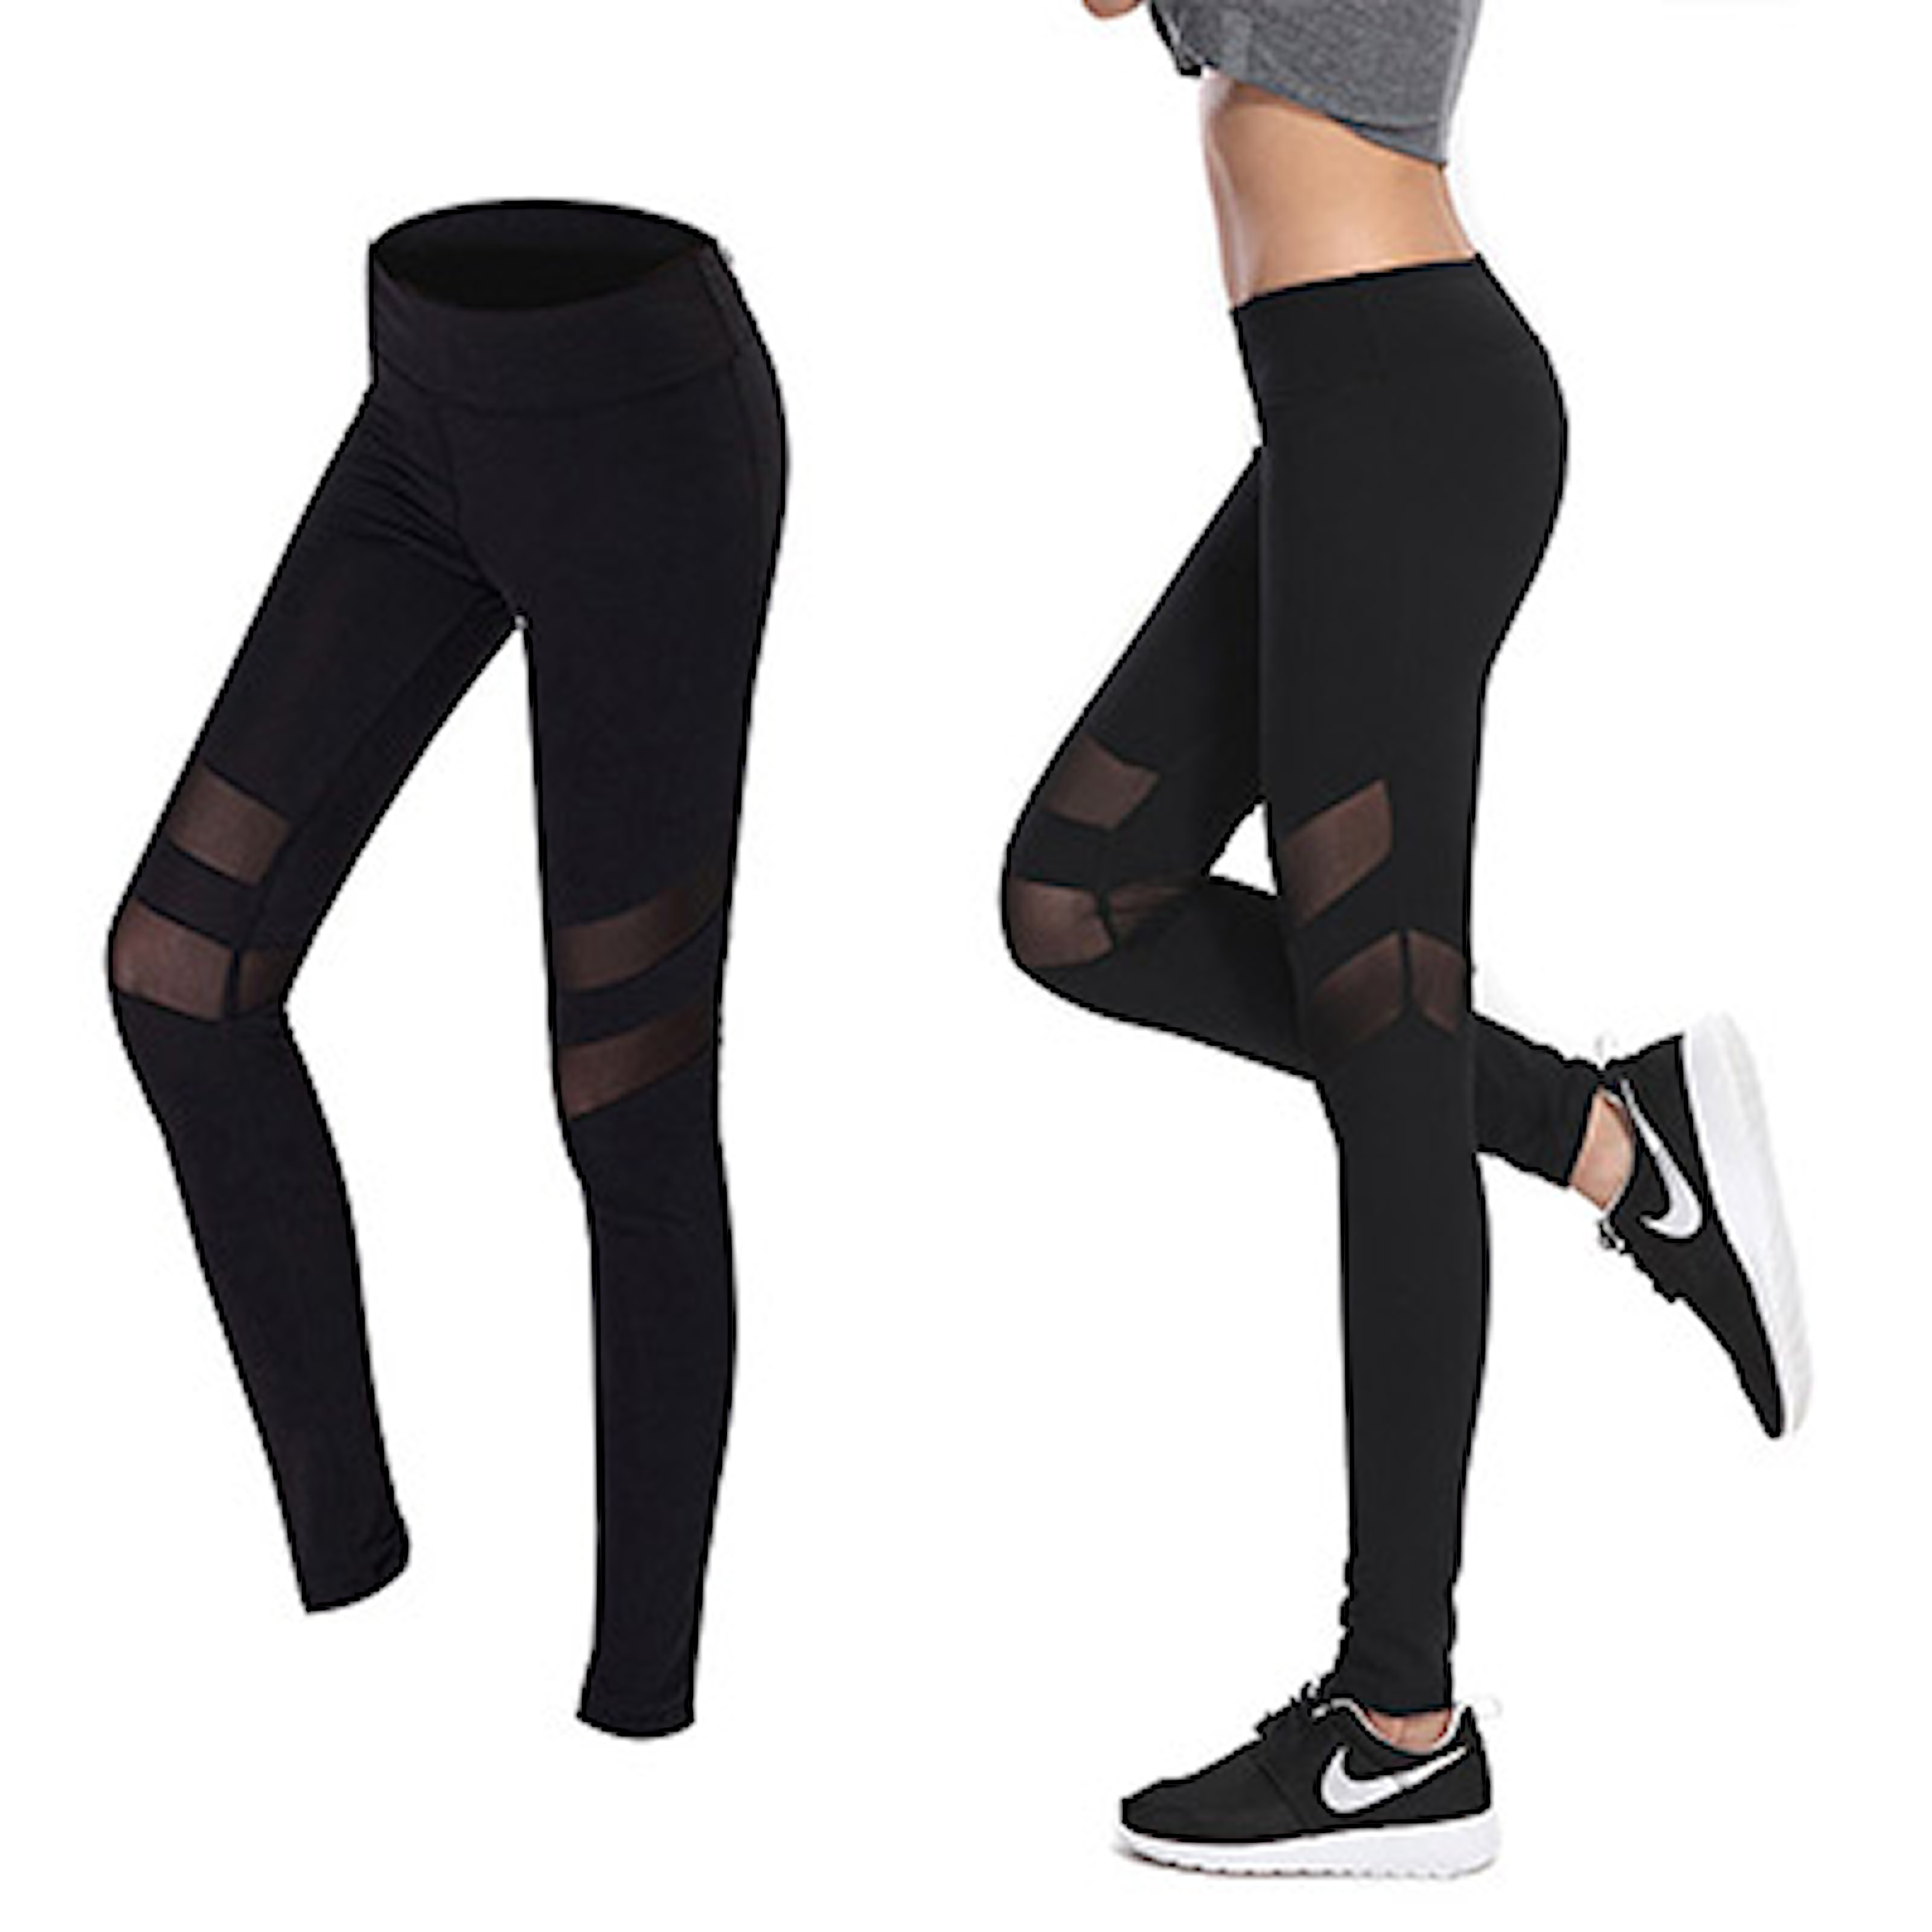 L, 3, Workout Tights With Details, Träningstights, ,